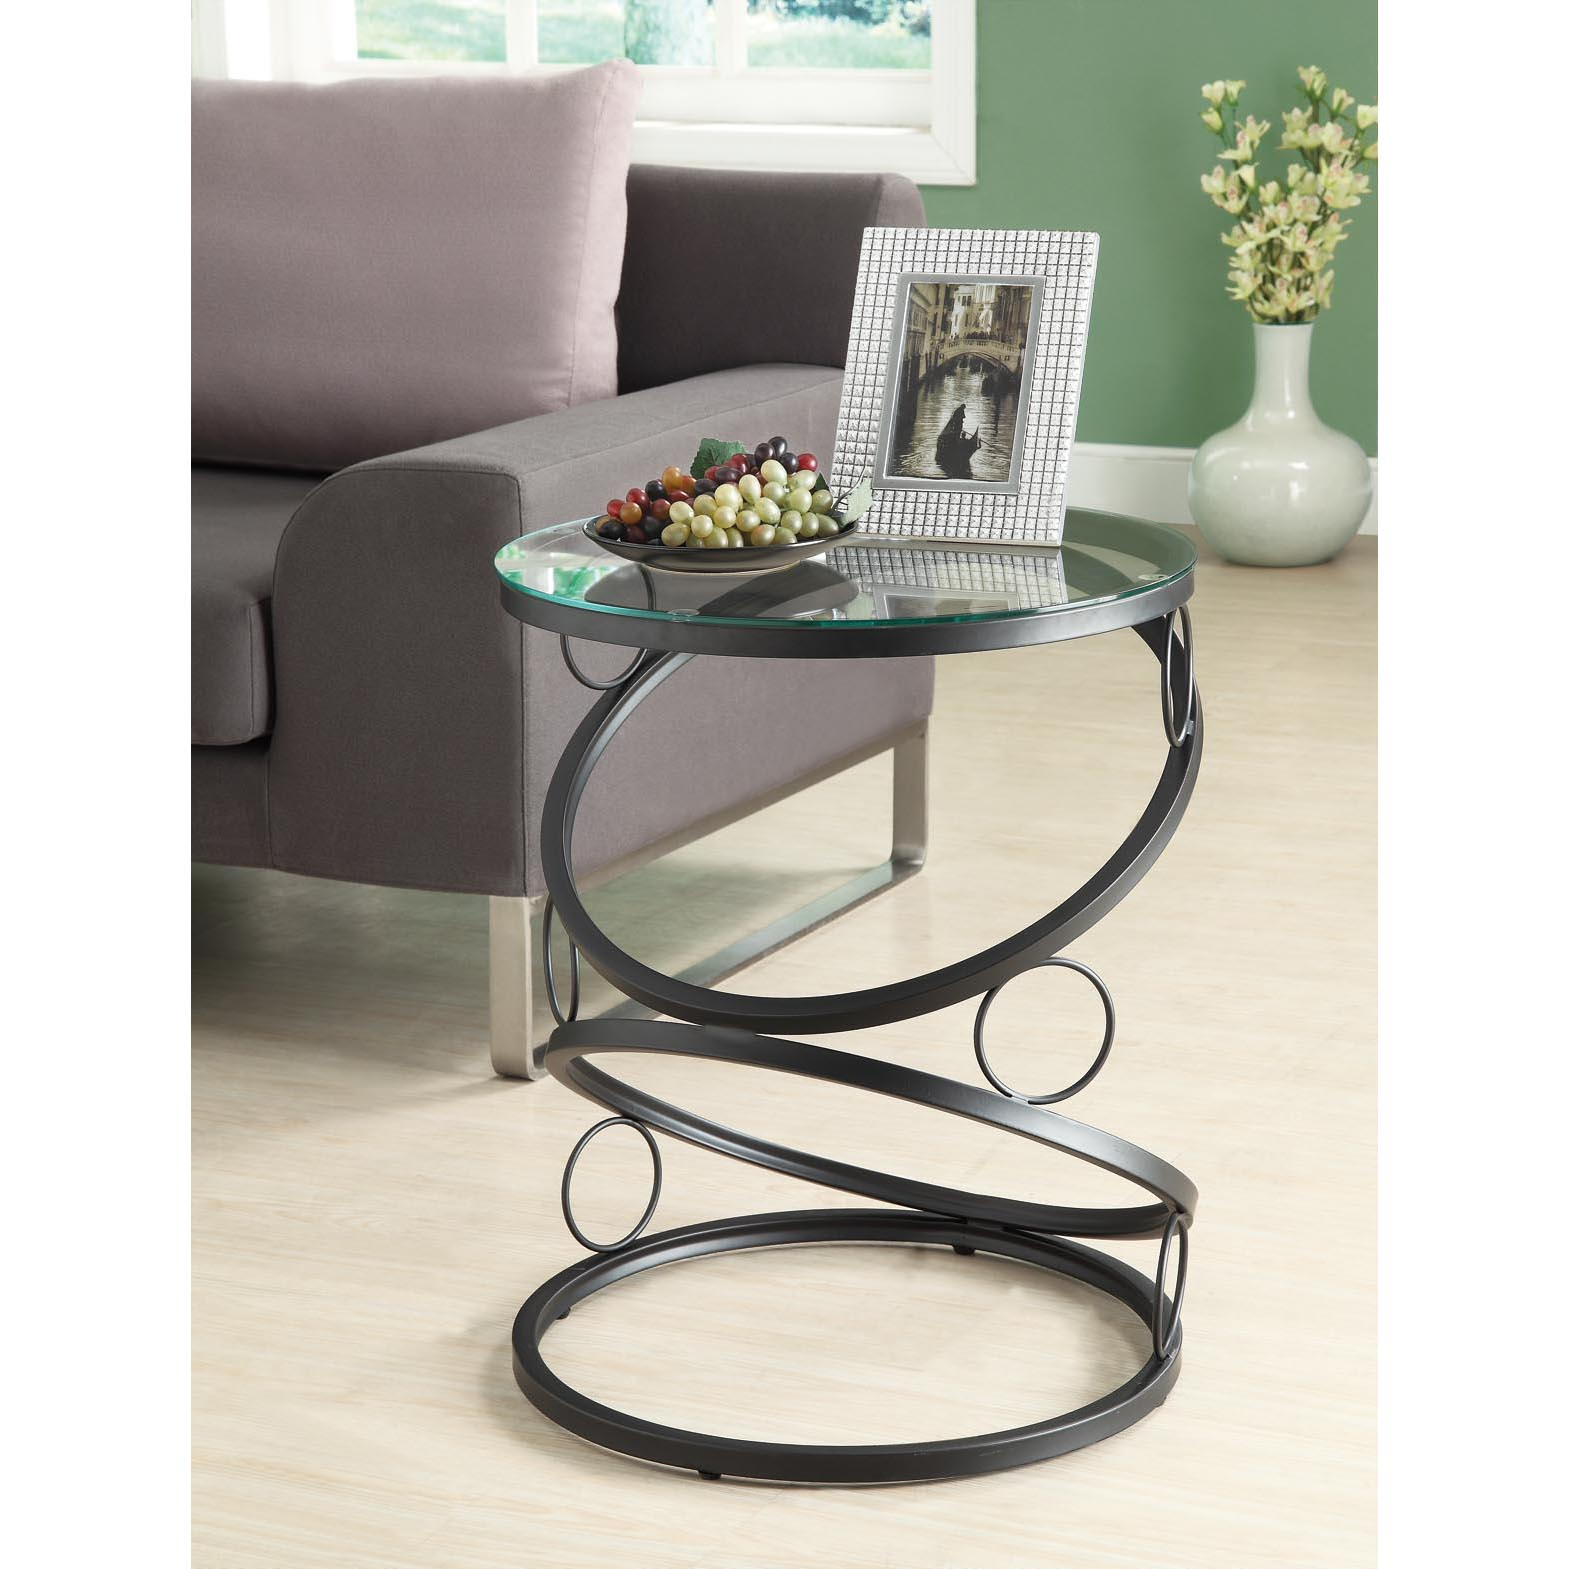 Matte Black Metal Accent Table with Tempered Glass - Thumbnail 0